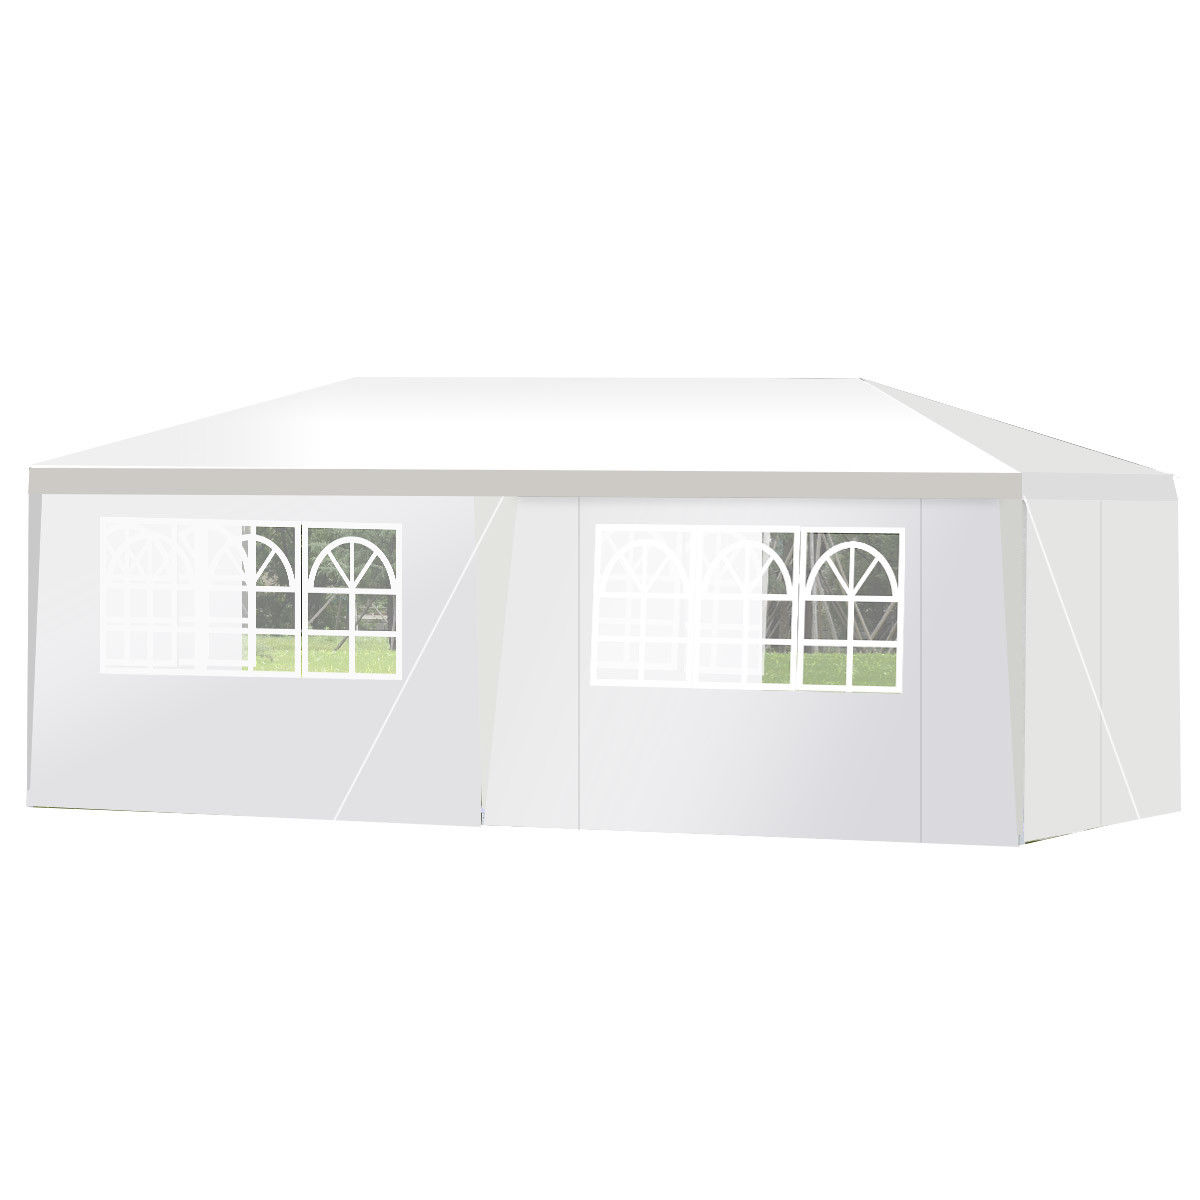 Wedding Tent Canopy Party 10'x20' Heavy Duty Gazebo Cater Event W/ Side Walls - image 4 of 10